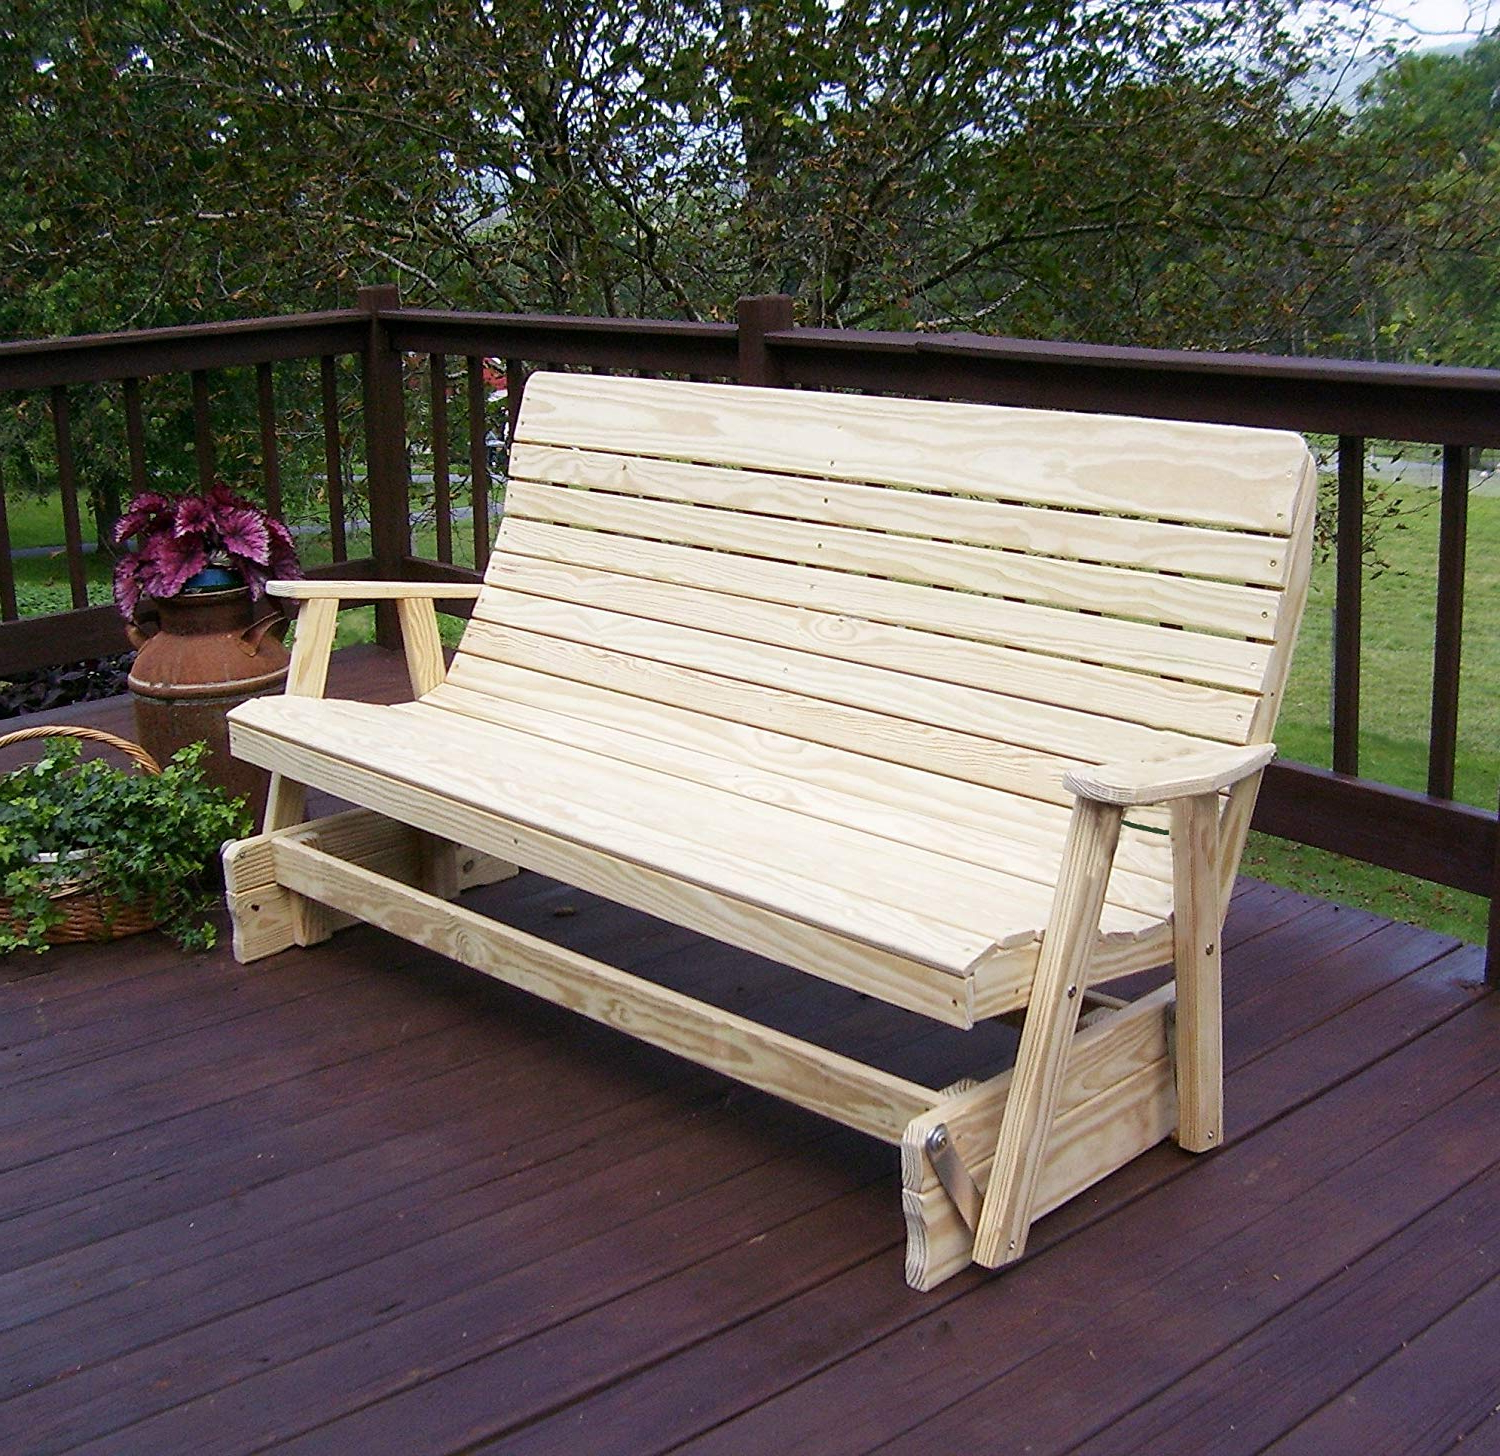 Fashionable Hardwood Porch Glider Benches In Amazon : 6' Porch Glider Outdoor Patio Bench, 2 Person (View 7 of 30)